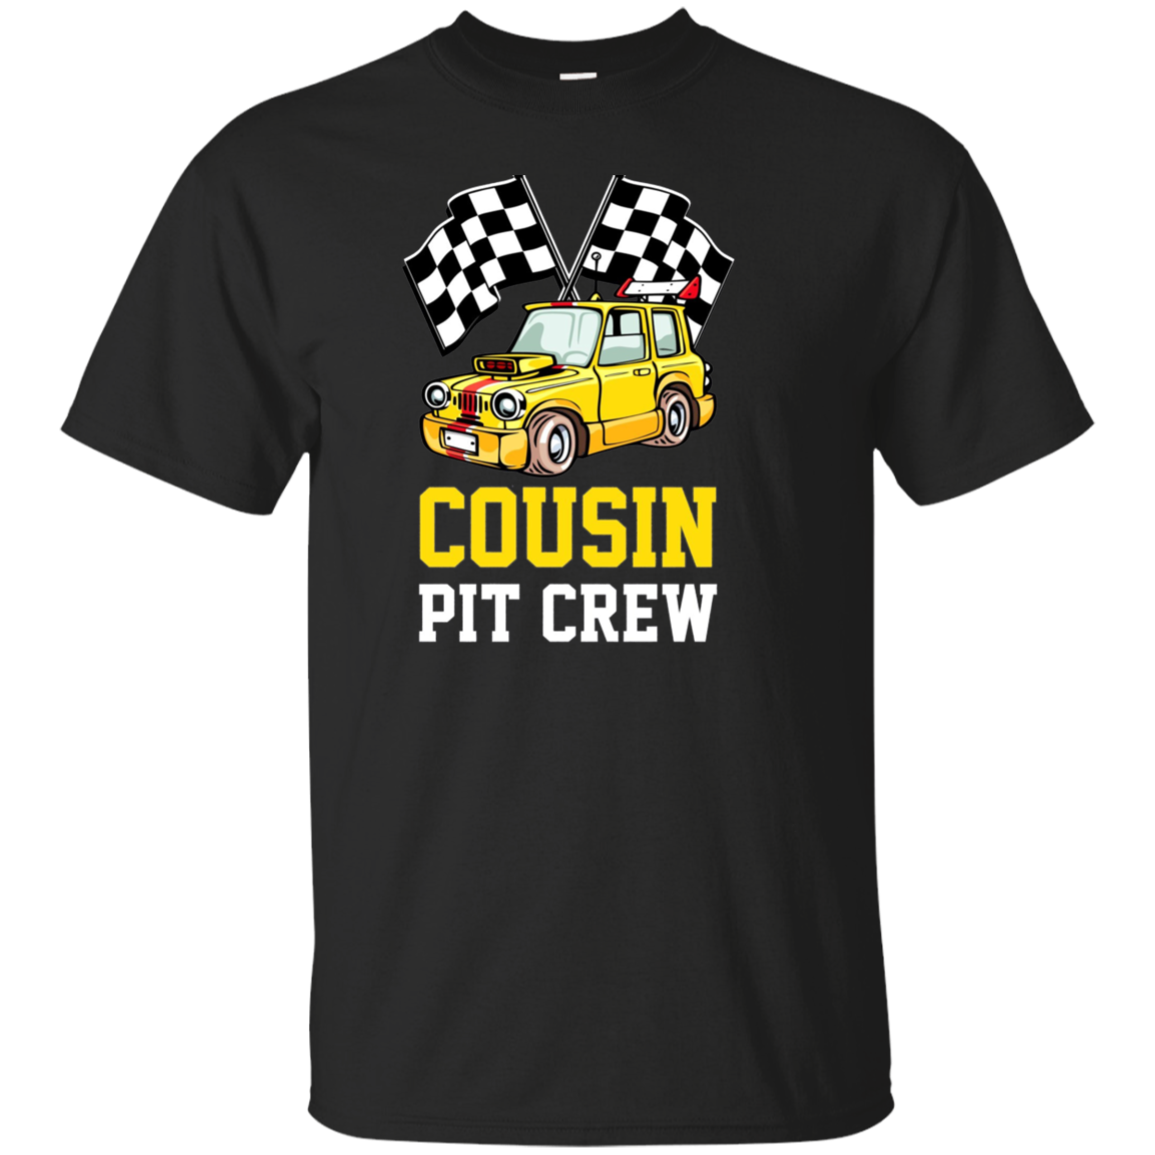 Pit Crew COUSIN Back Print Long Sleeve T-Shirt Race Car